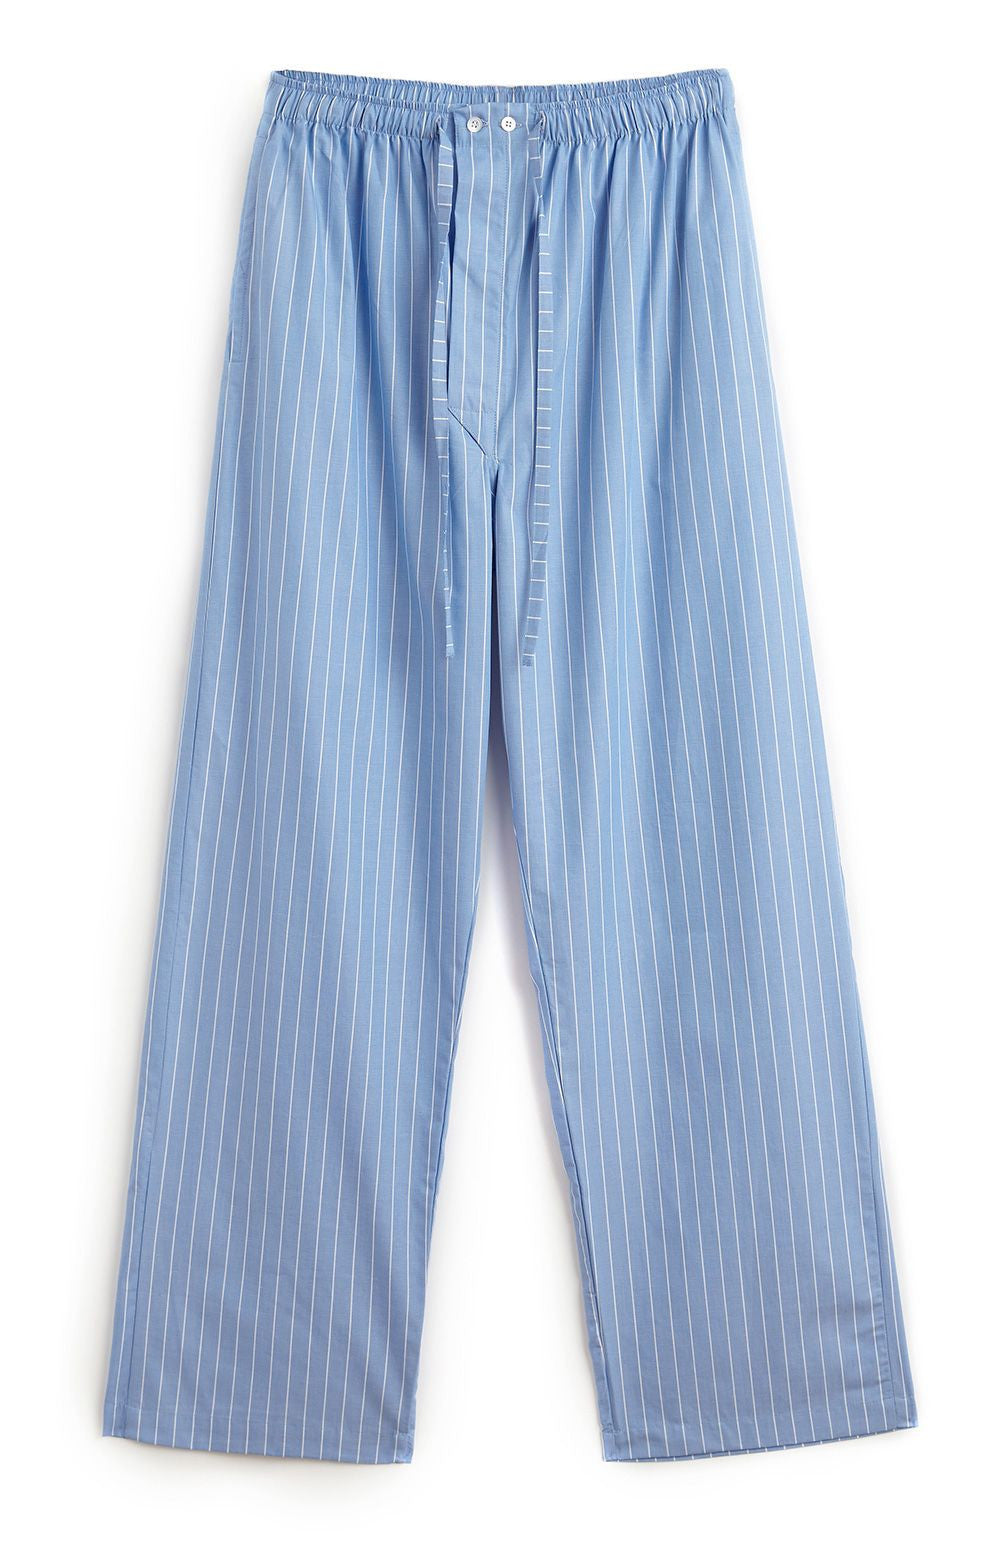 HERITAGE PYJAMA TROUSERS - A257 | Bonsoir of London